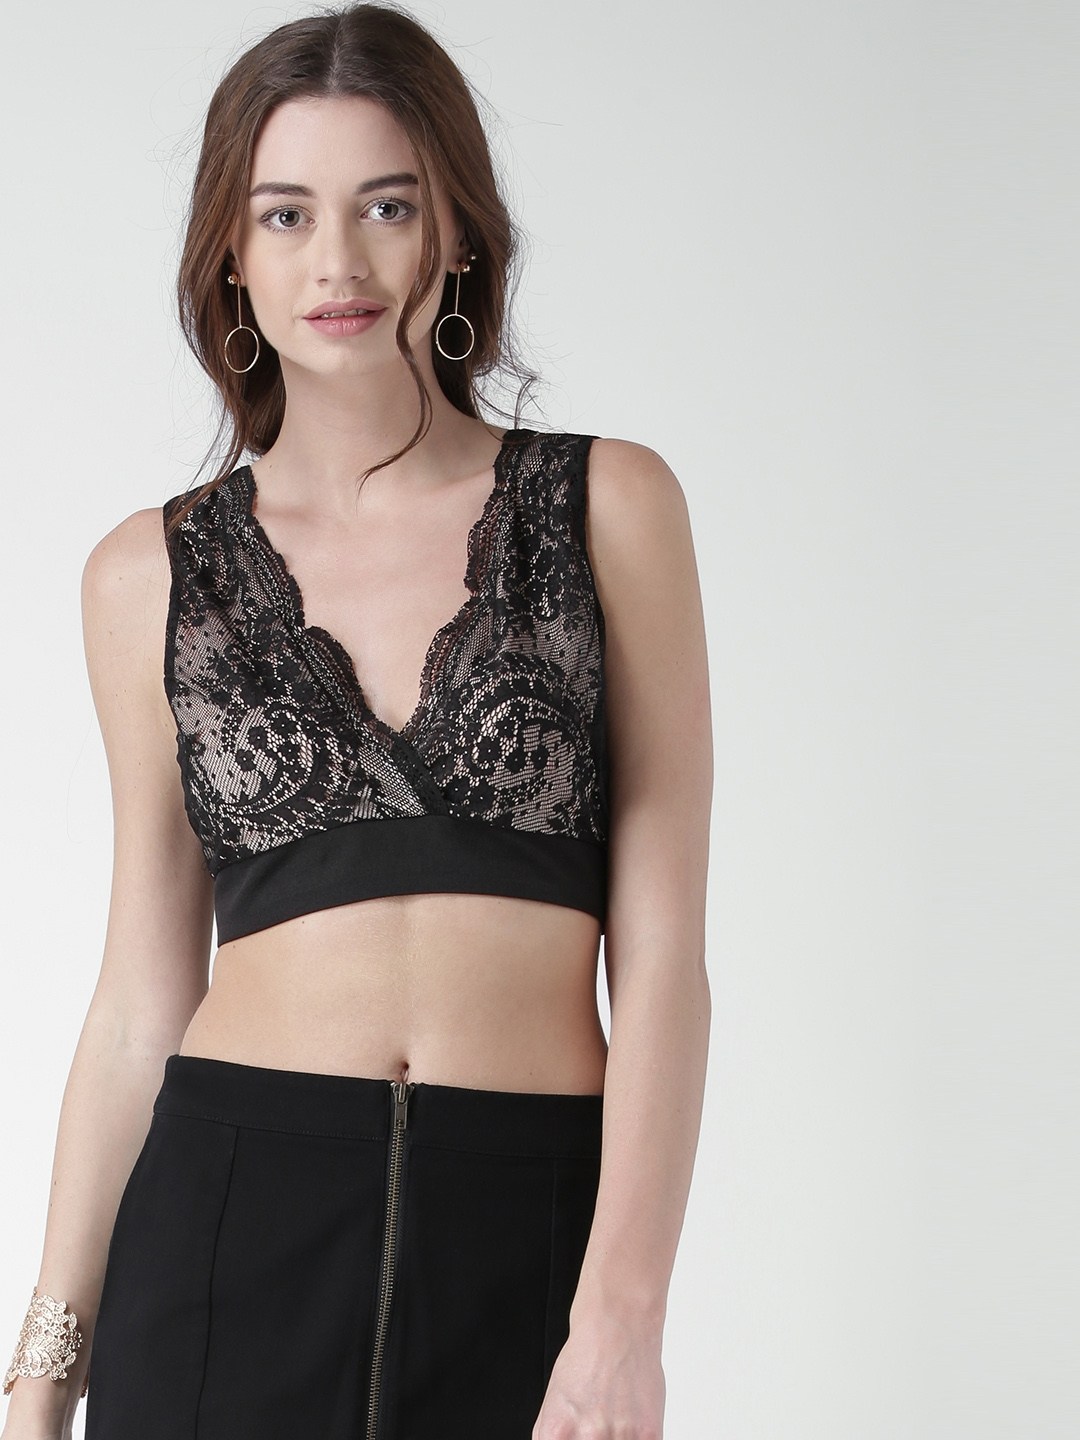 ab1425af07 Buy FOREVER 21 Women Black   Nude Coloured Lace Bralette Top - Tops for  Women 1621665